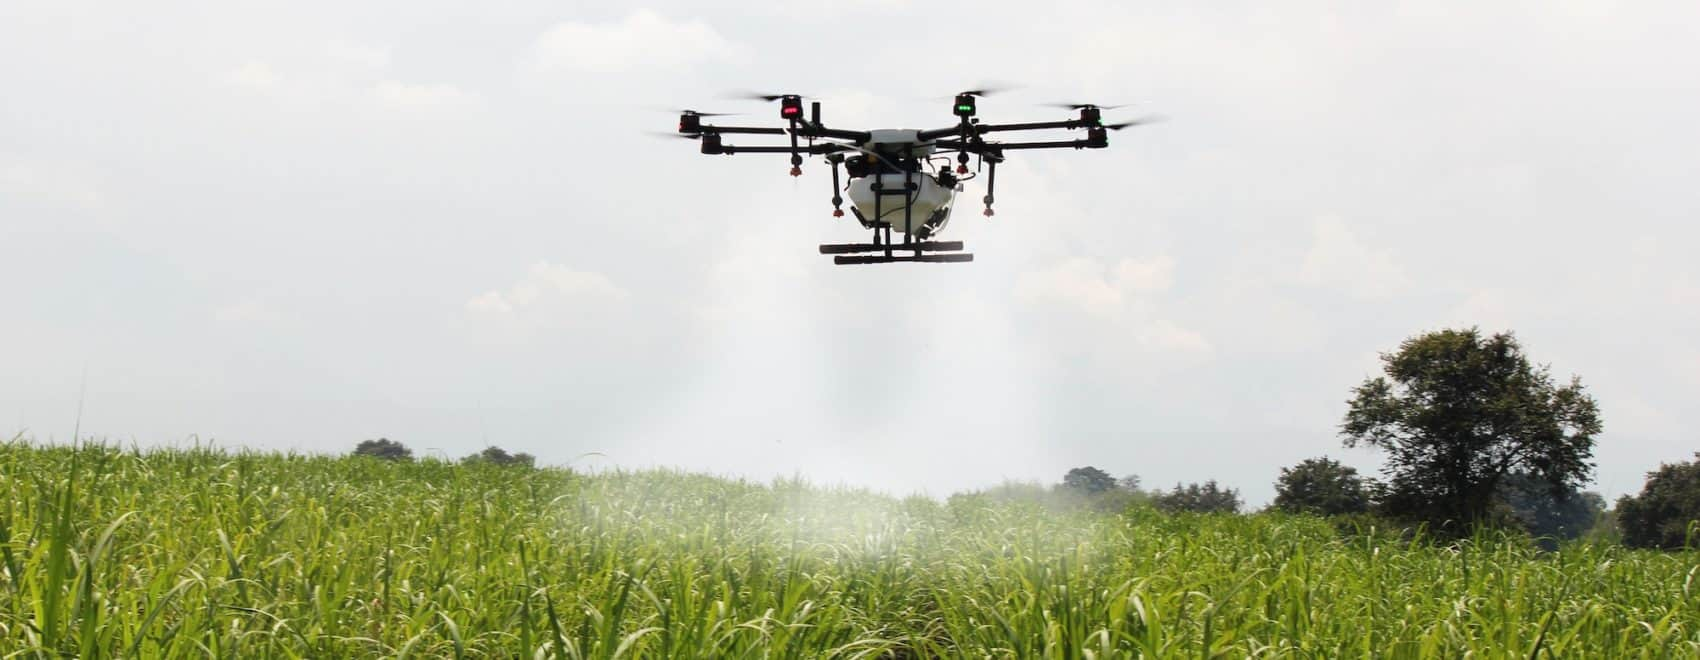 agriculture drone services cover